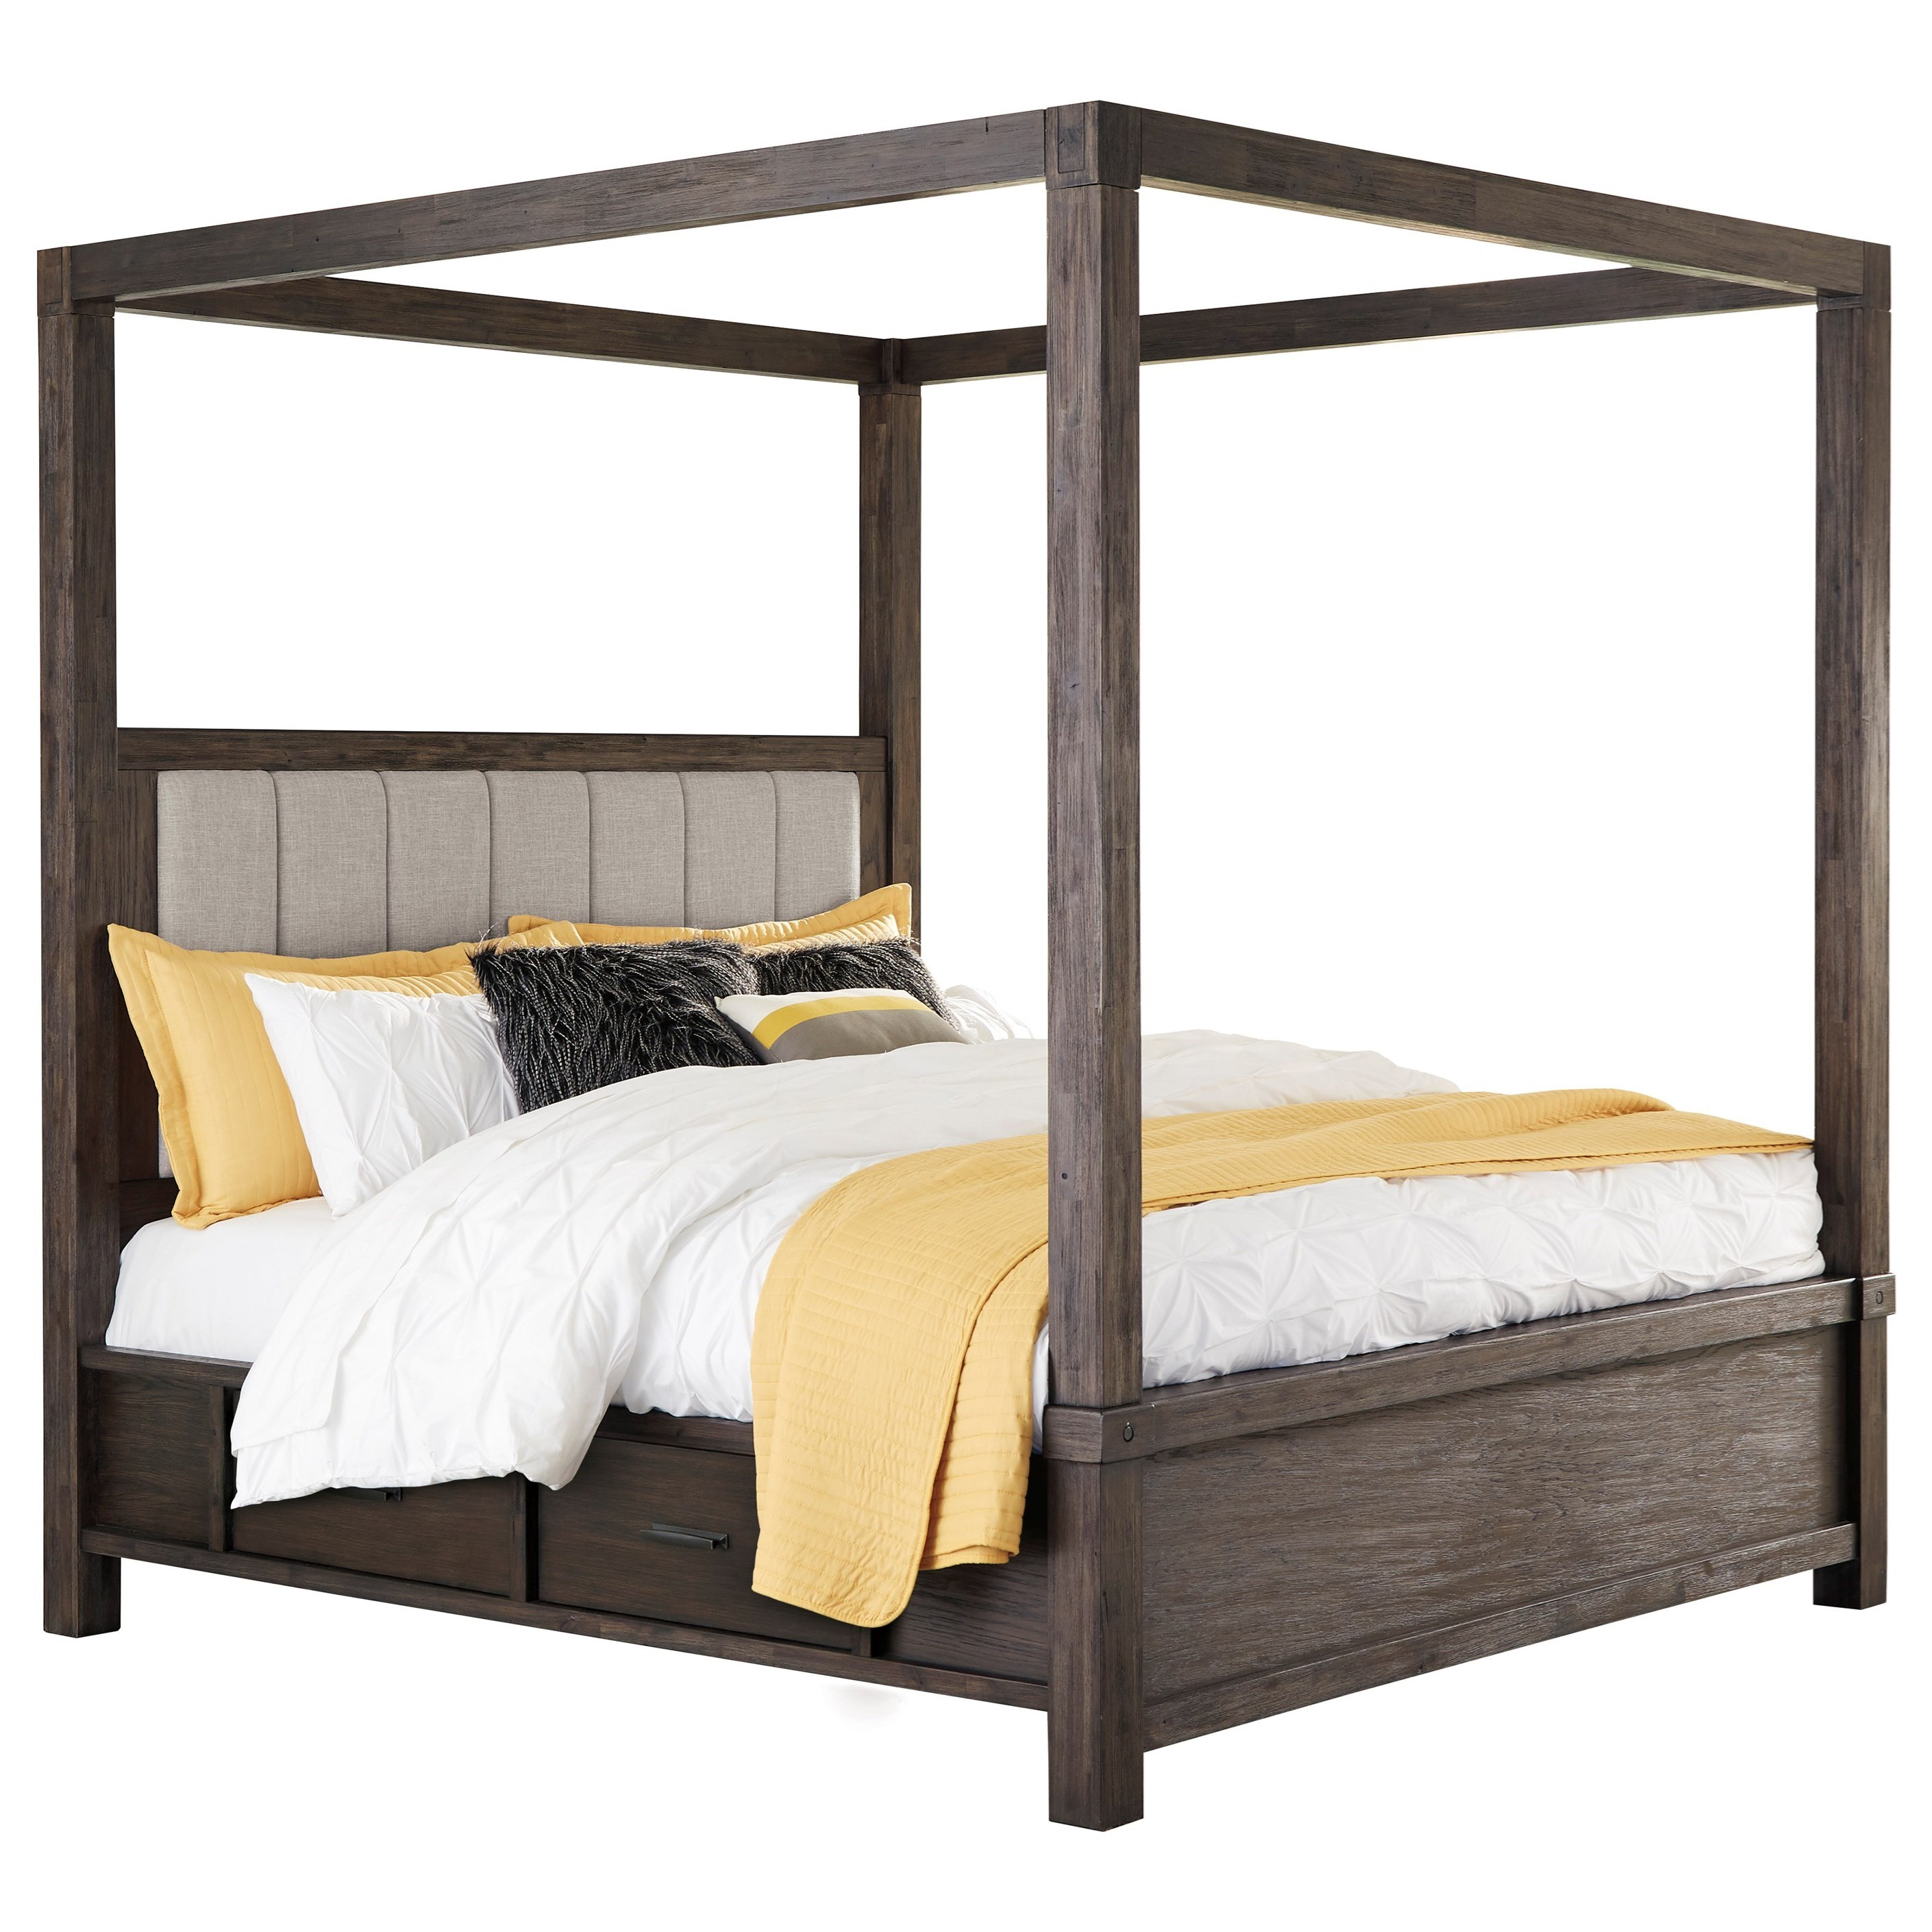 King Canopy Storage Bed